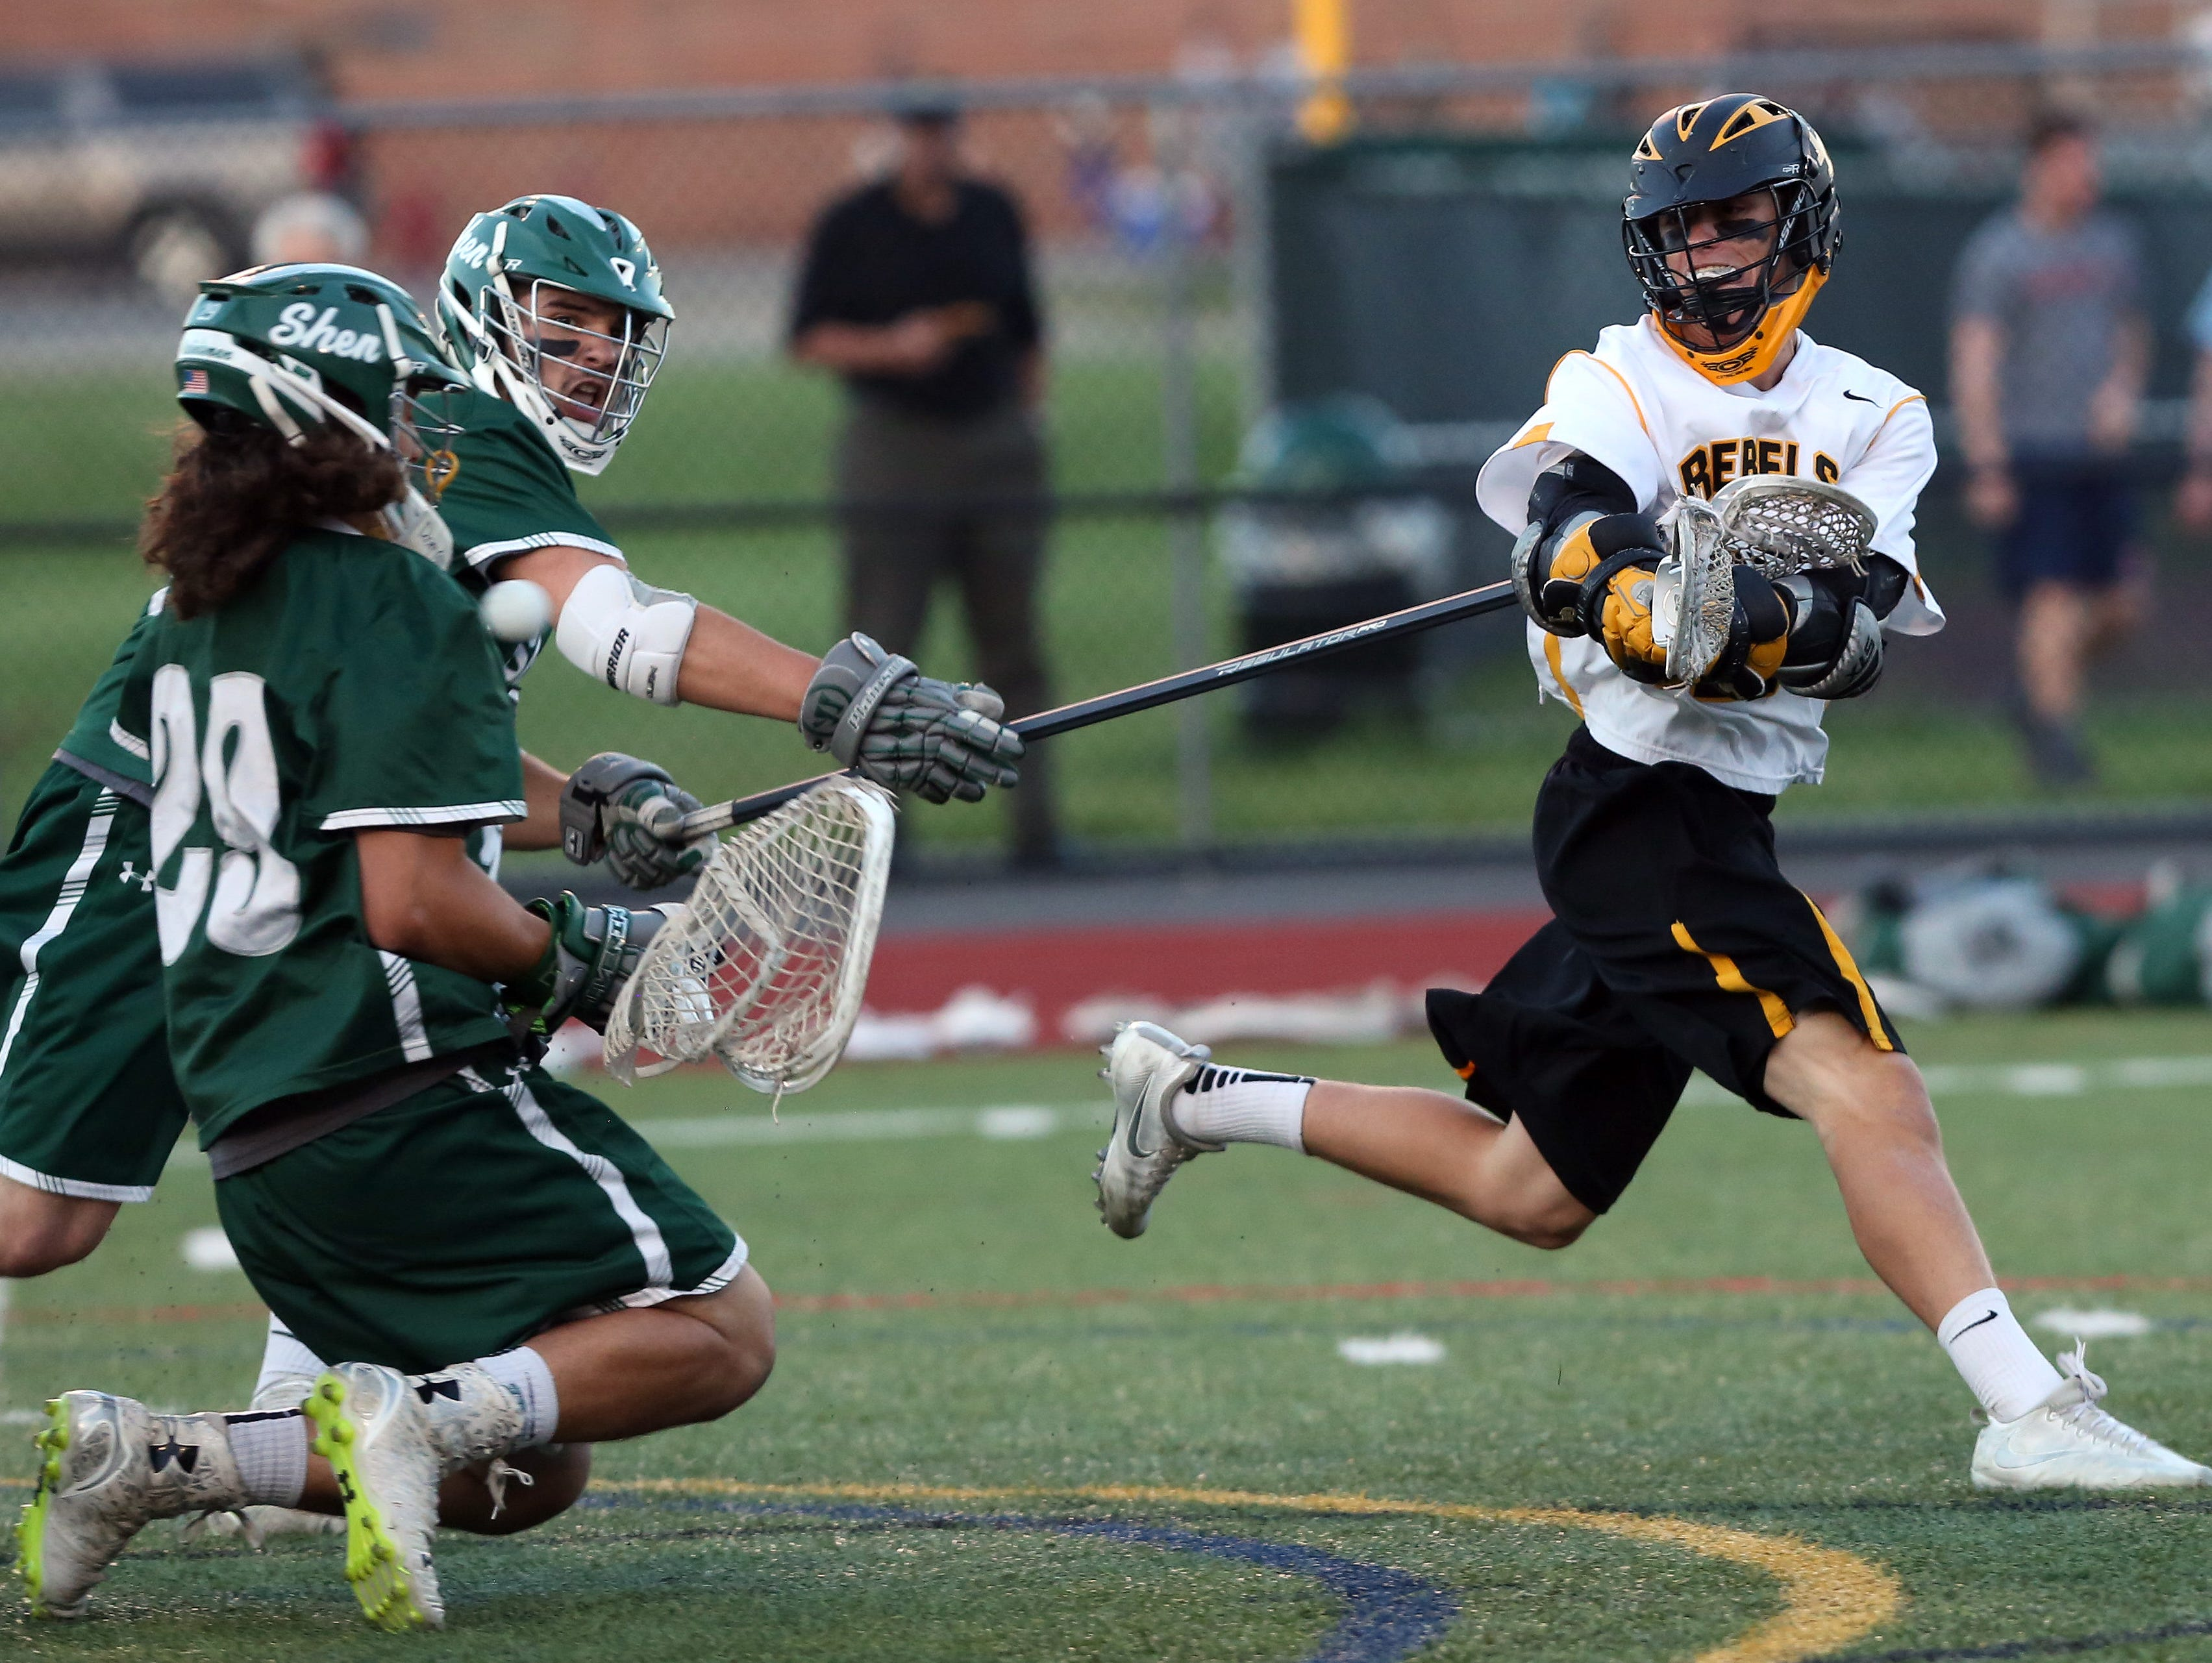 Lakeland/Panas' Sean Makar (2) fires a shot that gets by Shenendehowa goalie Anthony Tebbano, during the Class A state regional semifinal lacrosse game at Yorktown High School June 1, 2016. Lakeland/Panas won the game 8-7.